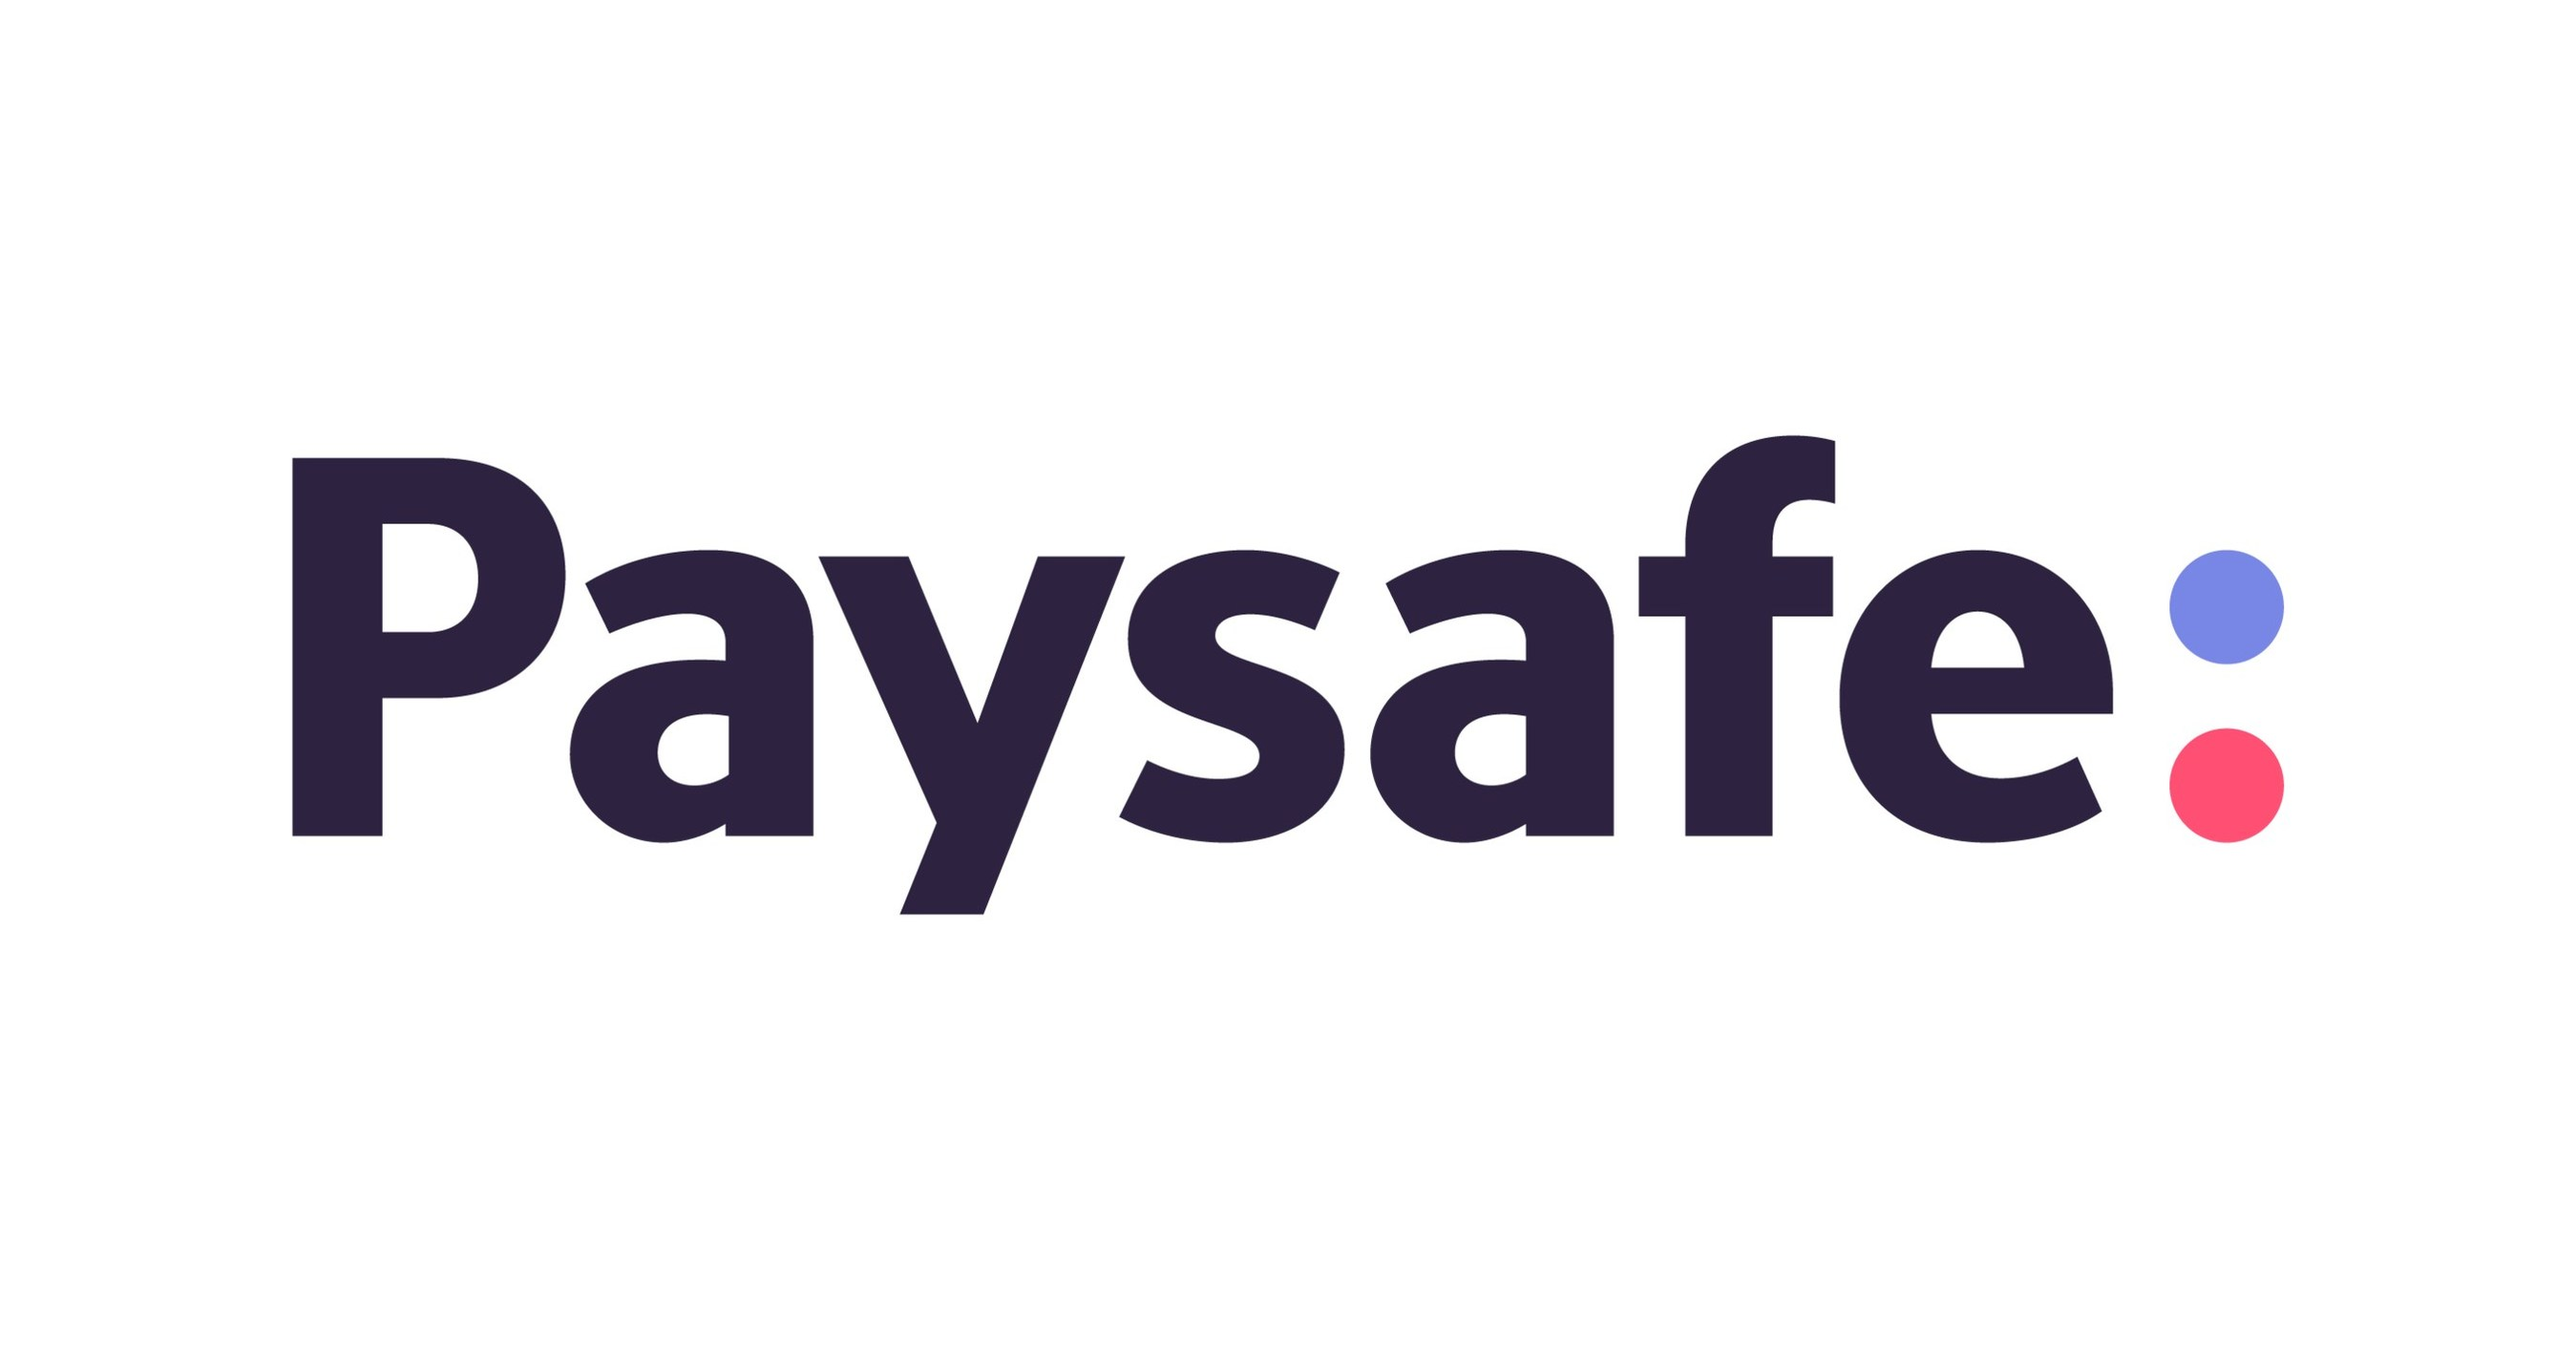 Paysafe Stock